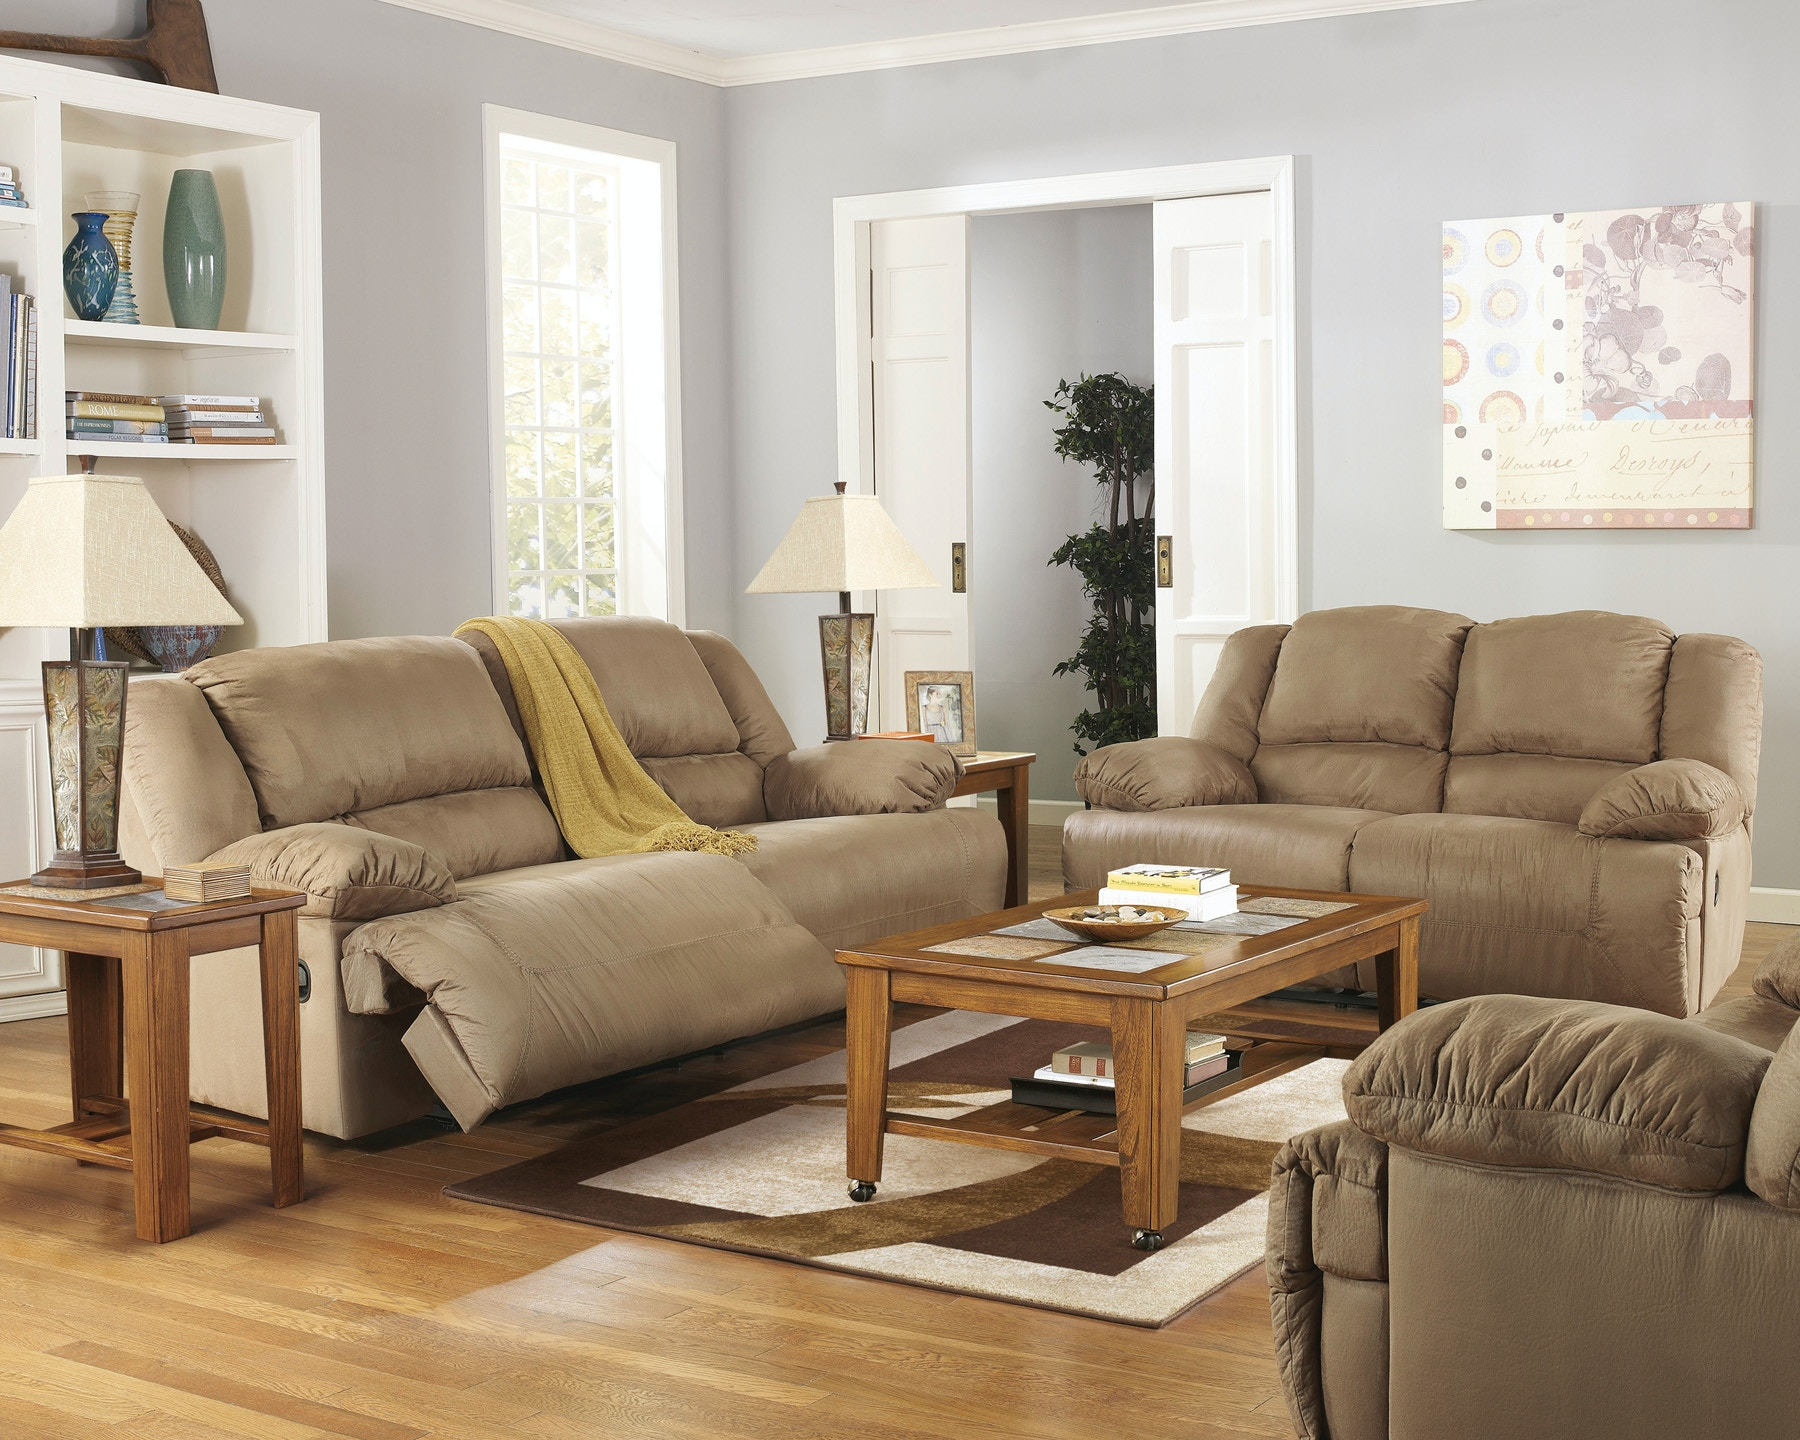 Signature Design by Ashley Living Room Hogan Reclining Sofa Z